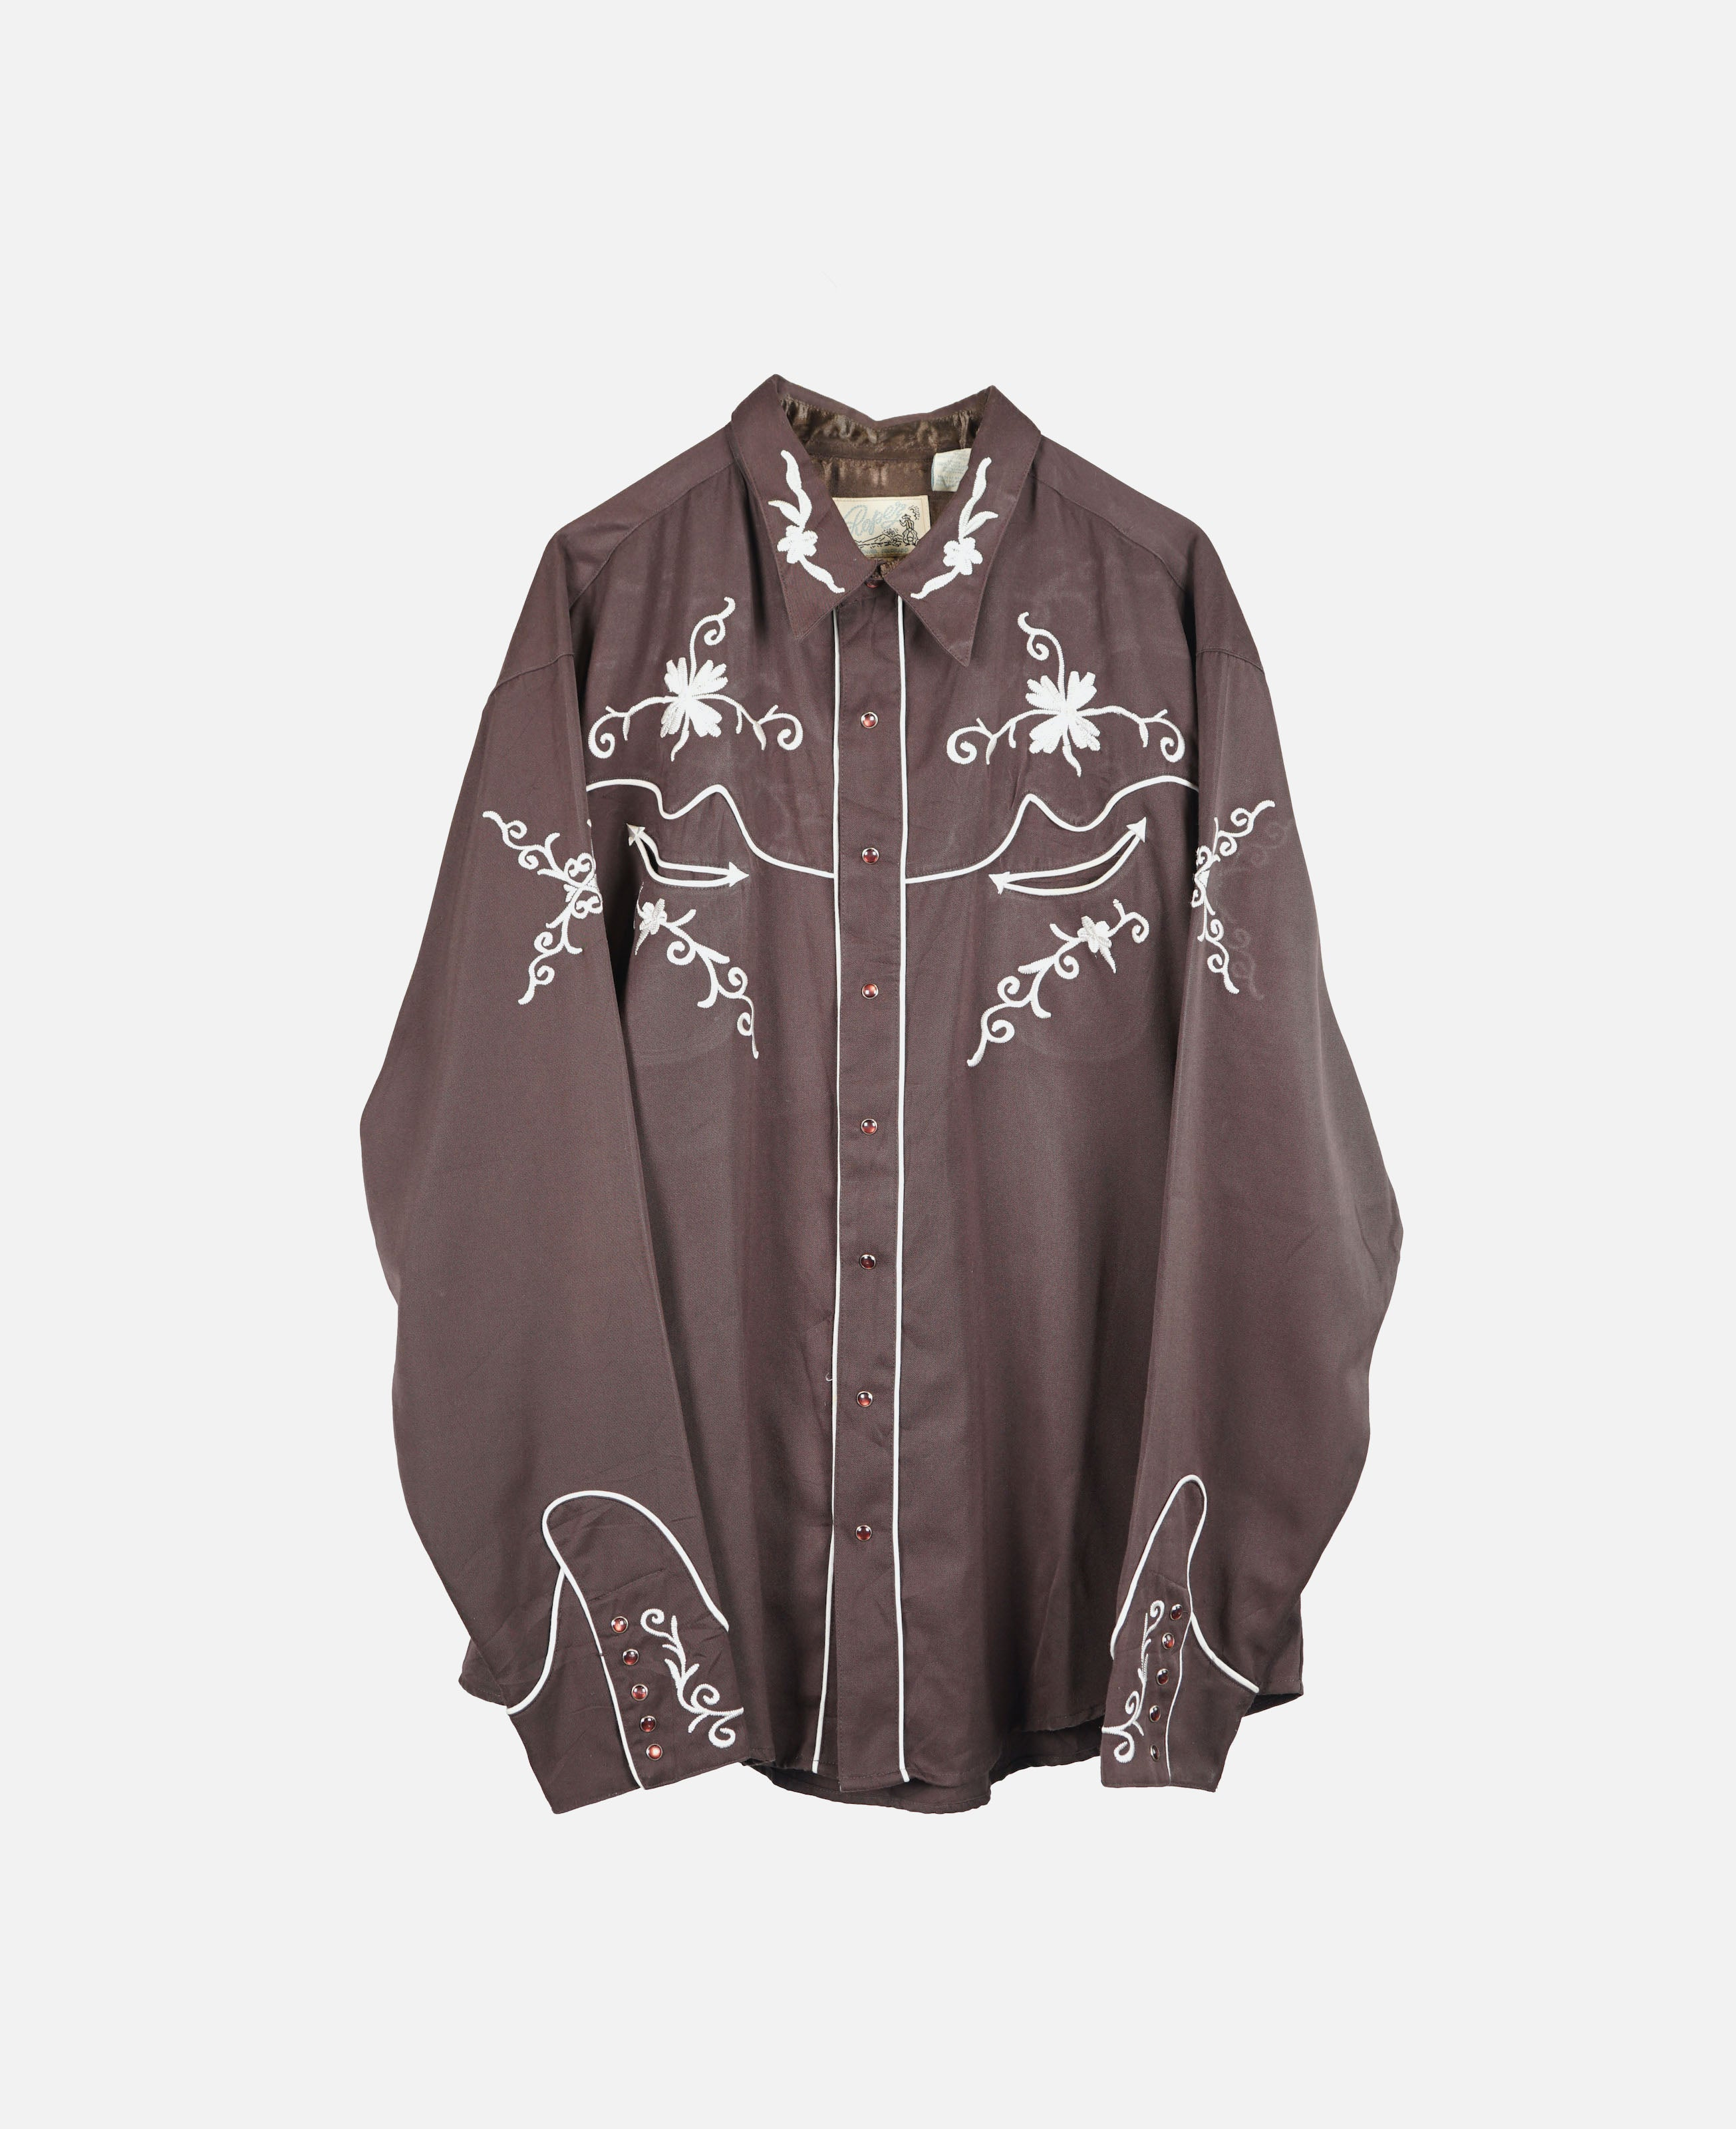 Western Shirt W/Embroidery